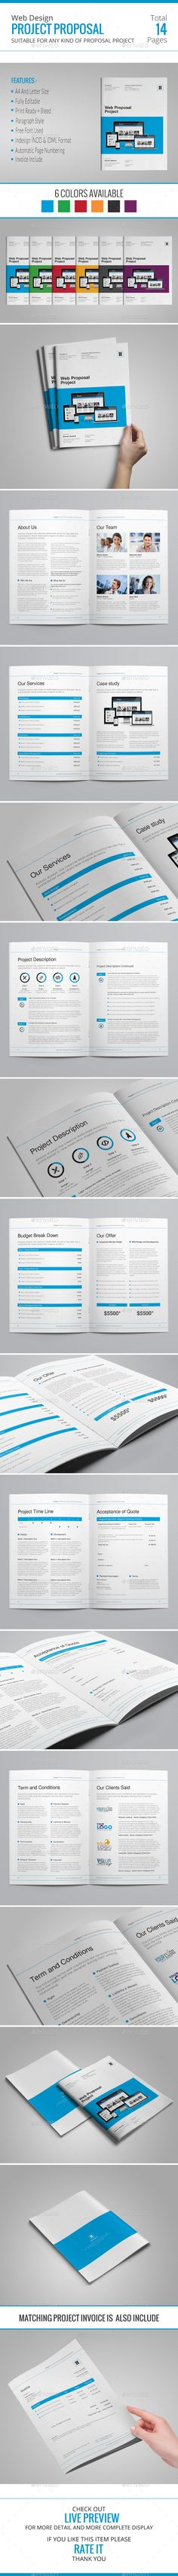 Official Proposal Template Sleman Clean Proposal Template  Pinterest  Proposal Templates .